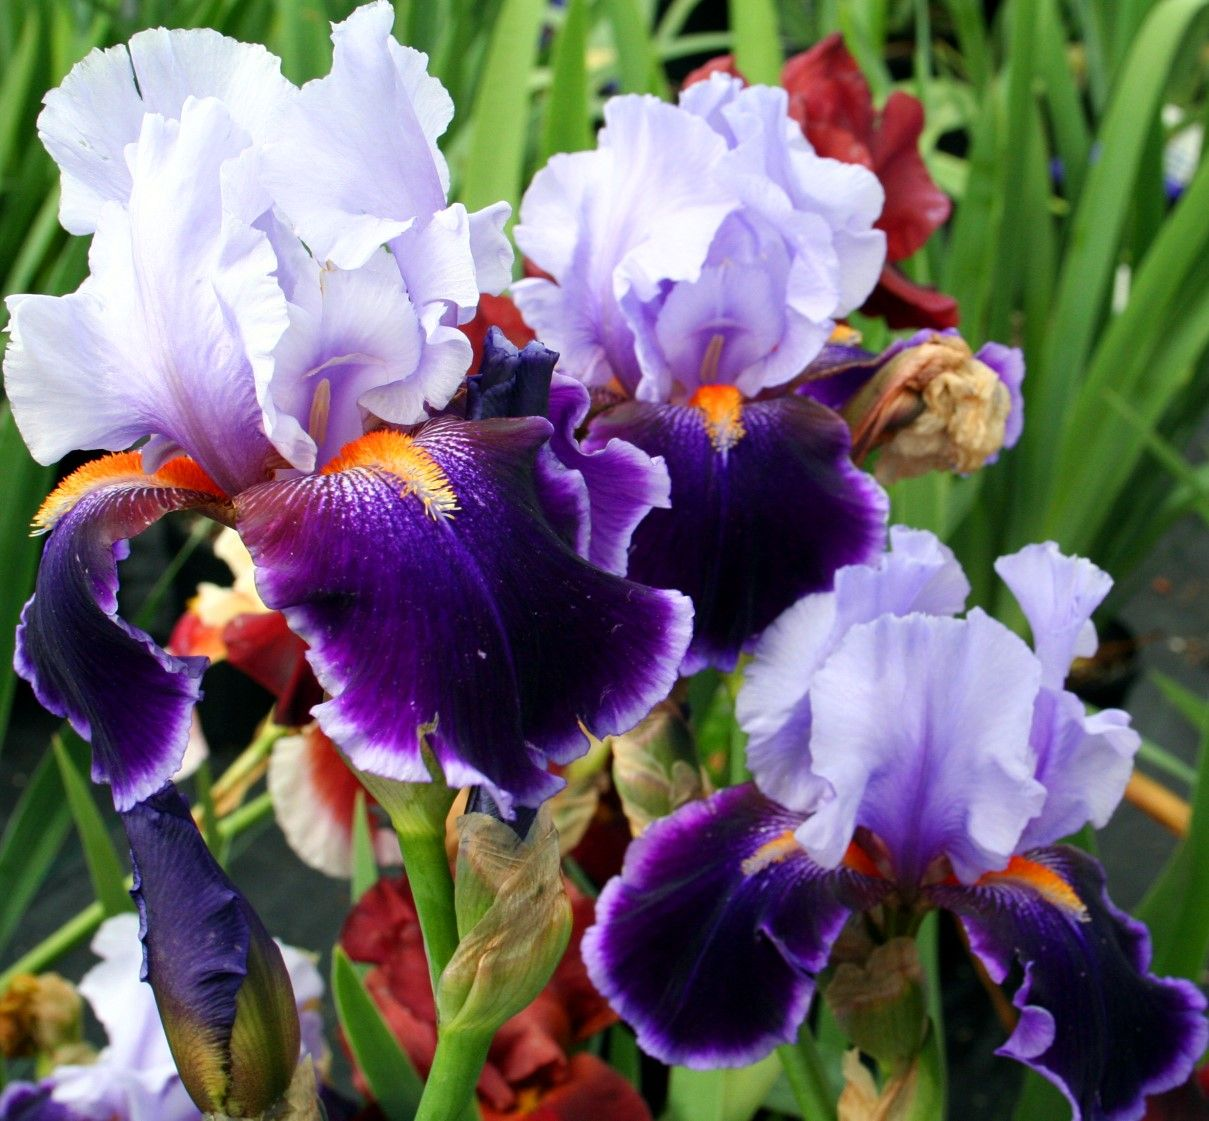 Iris is there any flower more beautiful zs favourite flowers paintings of a cluster of iris flowers yahoo image search results izmirmasajfo